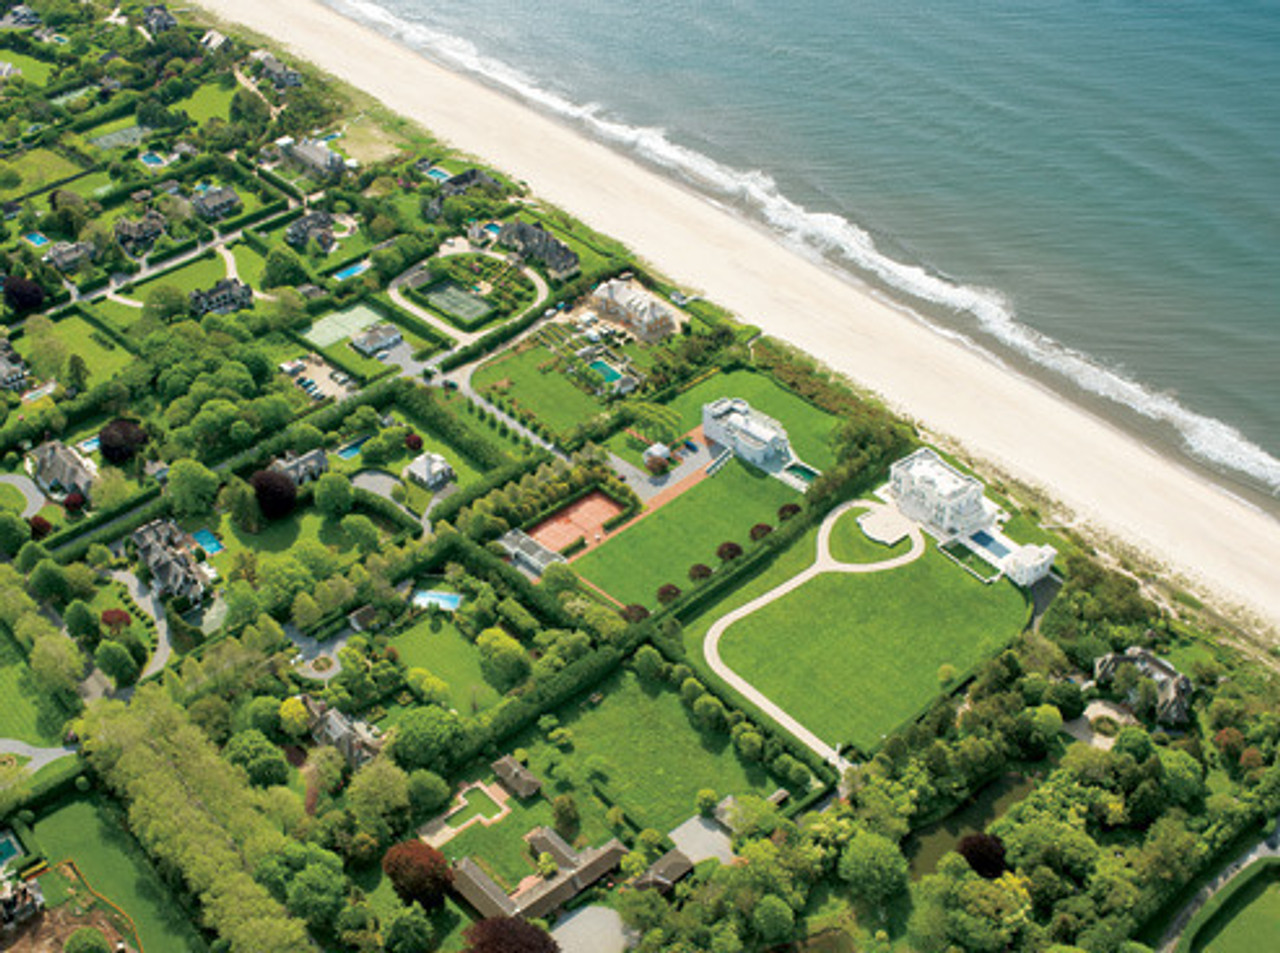 8 Things to do in the Hamptons That Aren't the Beach